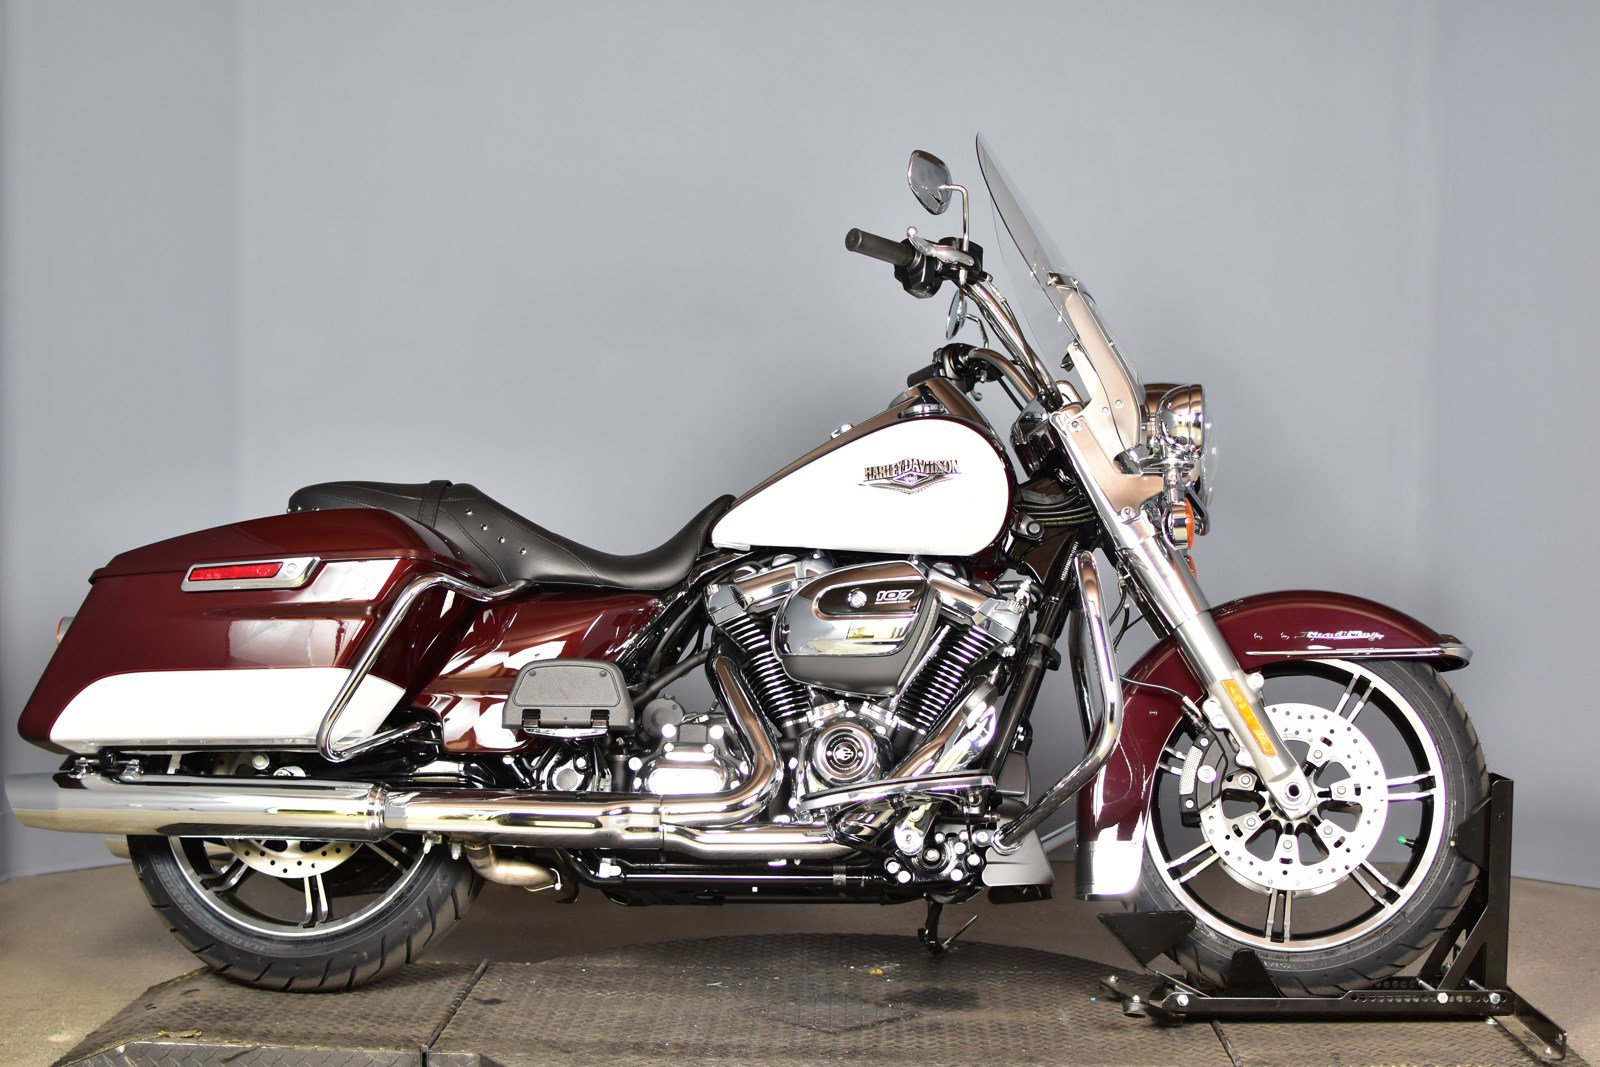 New 2021 Harley-Davidson Road King FLHR